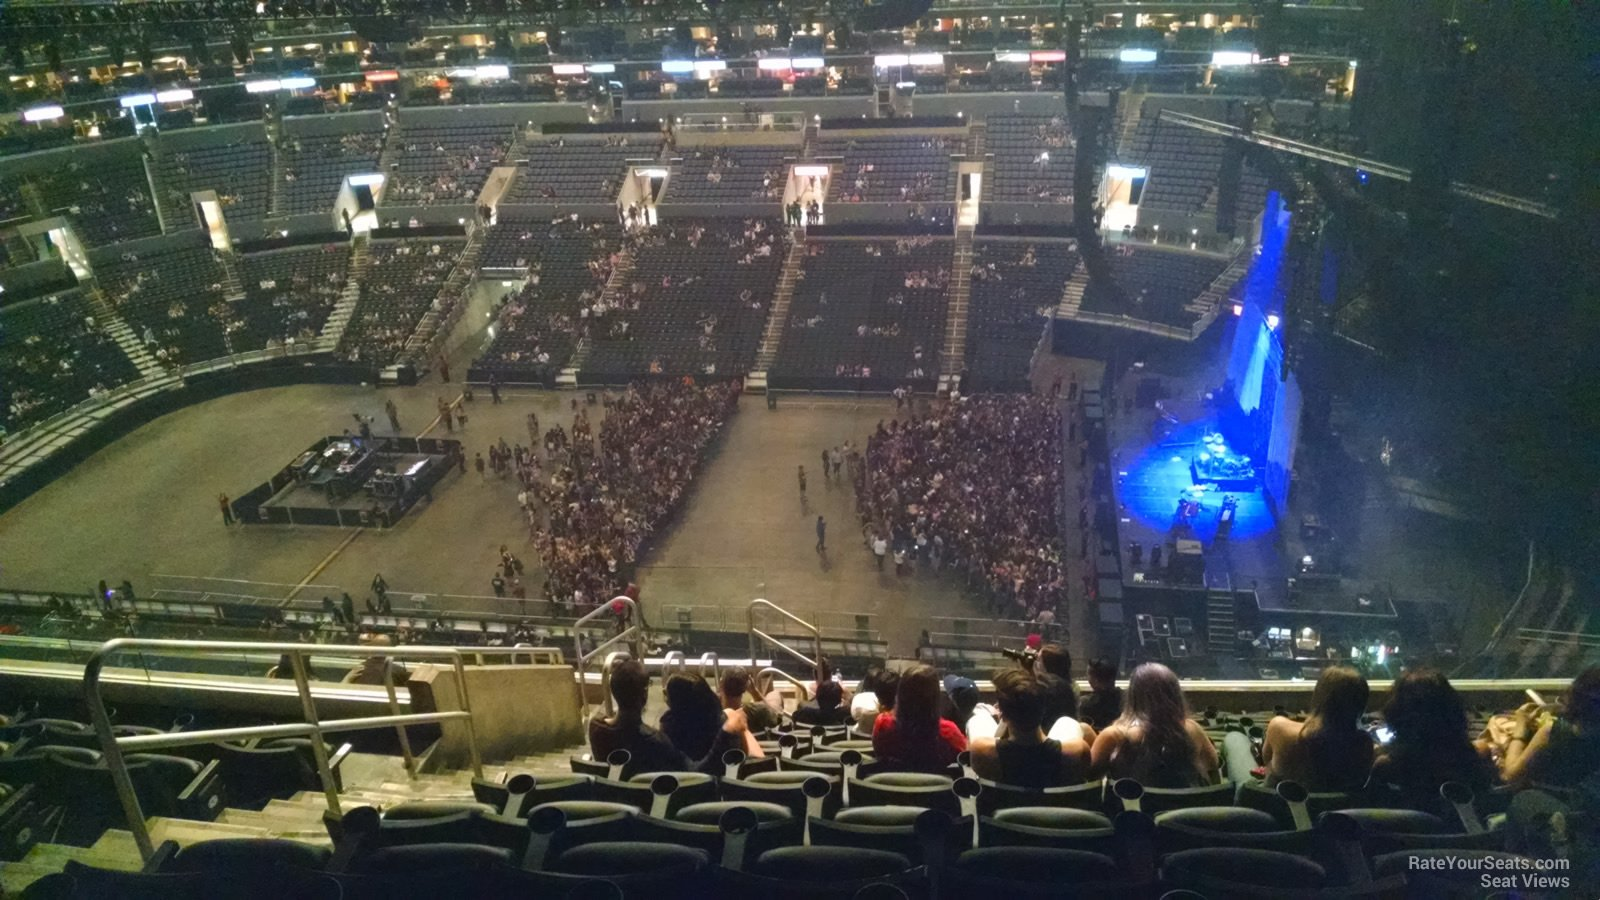 Staples Center Section 333 Concert Seating - RateYourSeats.com